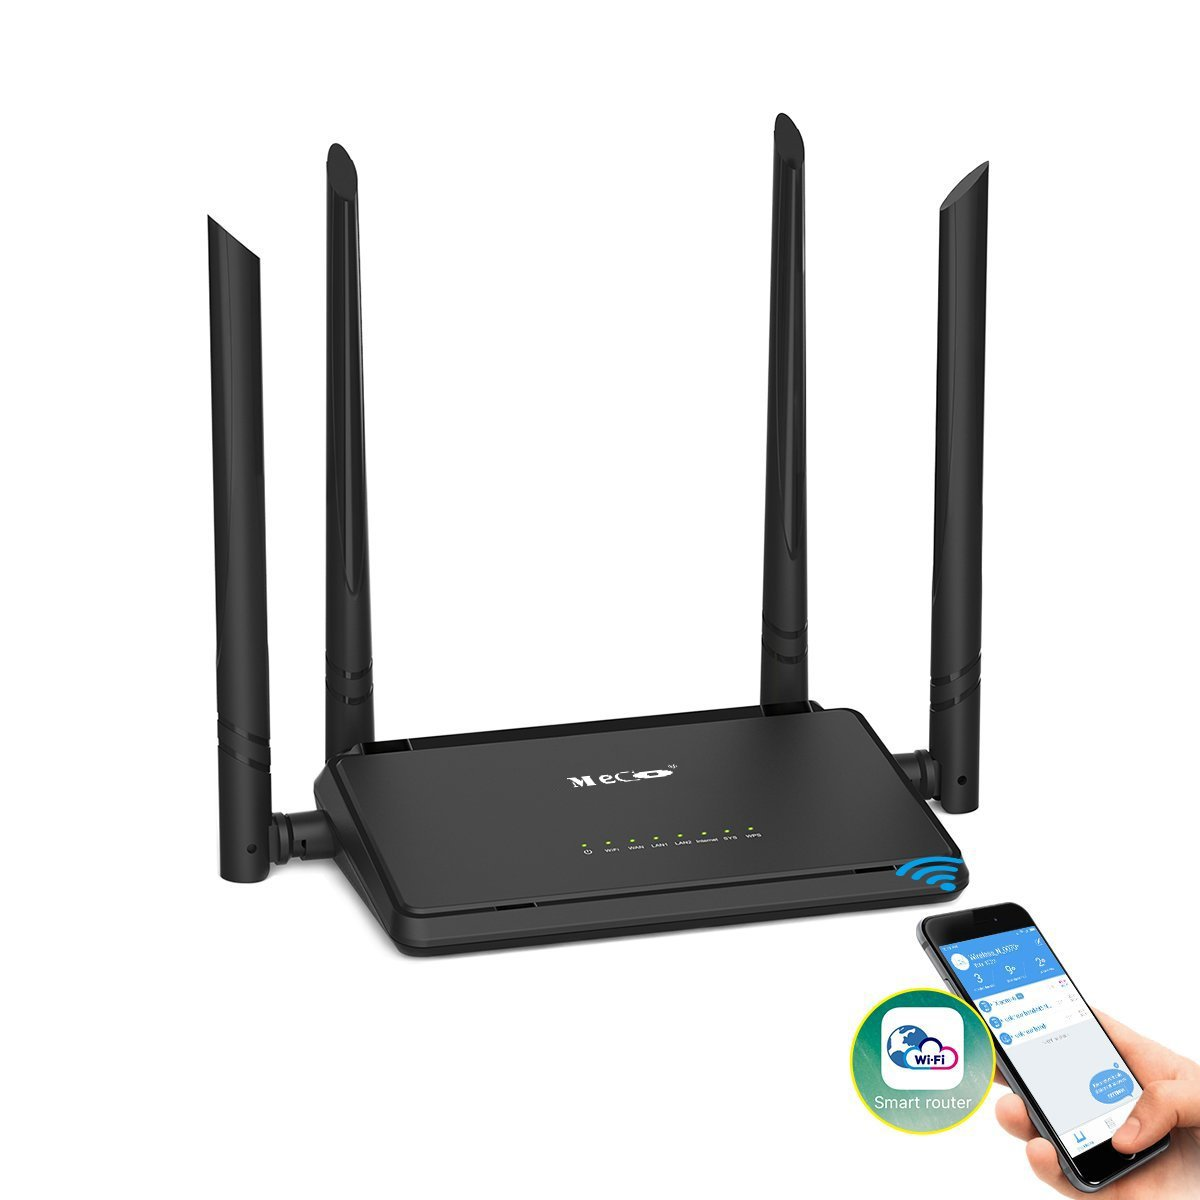 WiFi Router, MECO N300 Wireless Router with 4x5dBi High Gain External Antennas 2.4GHz Band Singnal Extender with Smart APP, Parental Controls, Good for Small House and Office